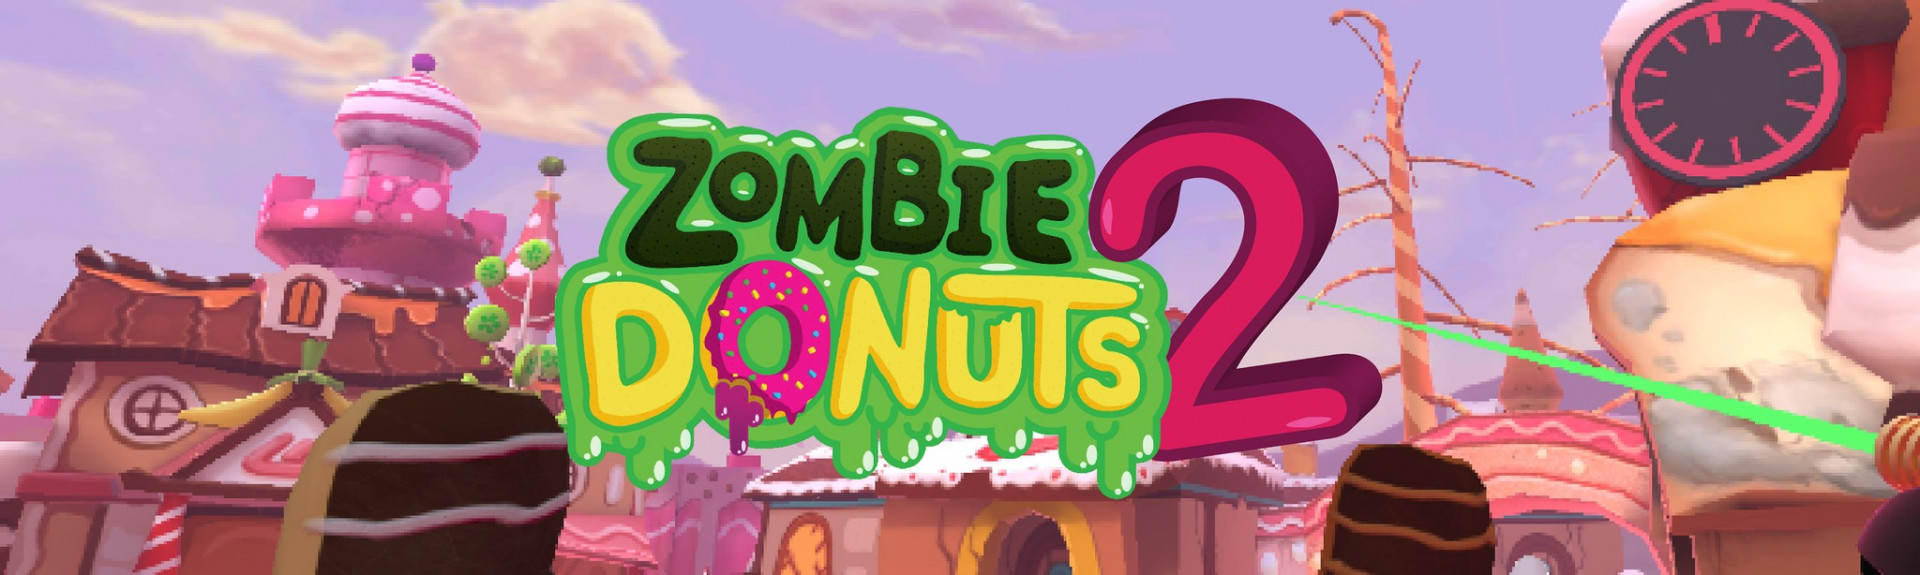 Zombie Donuts 2